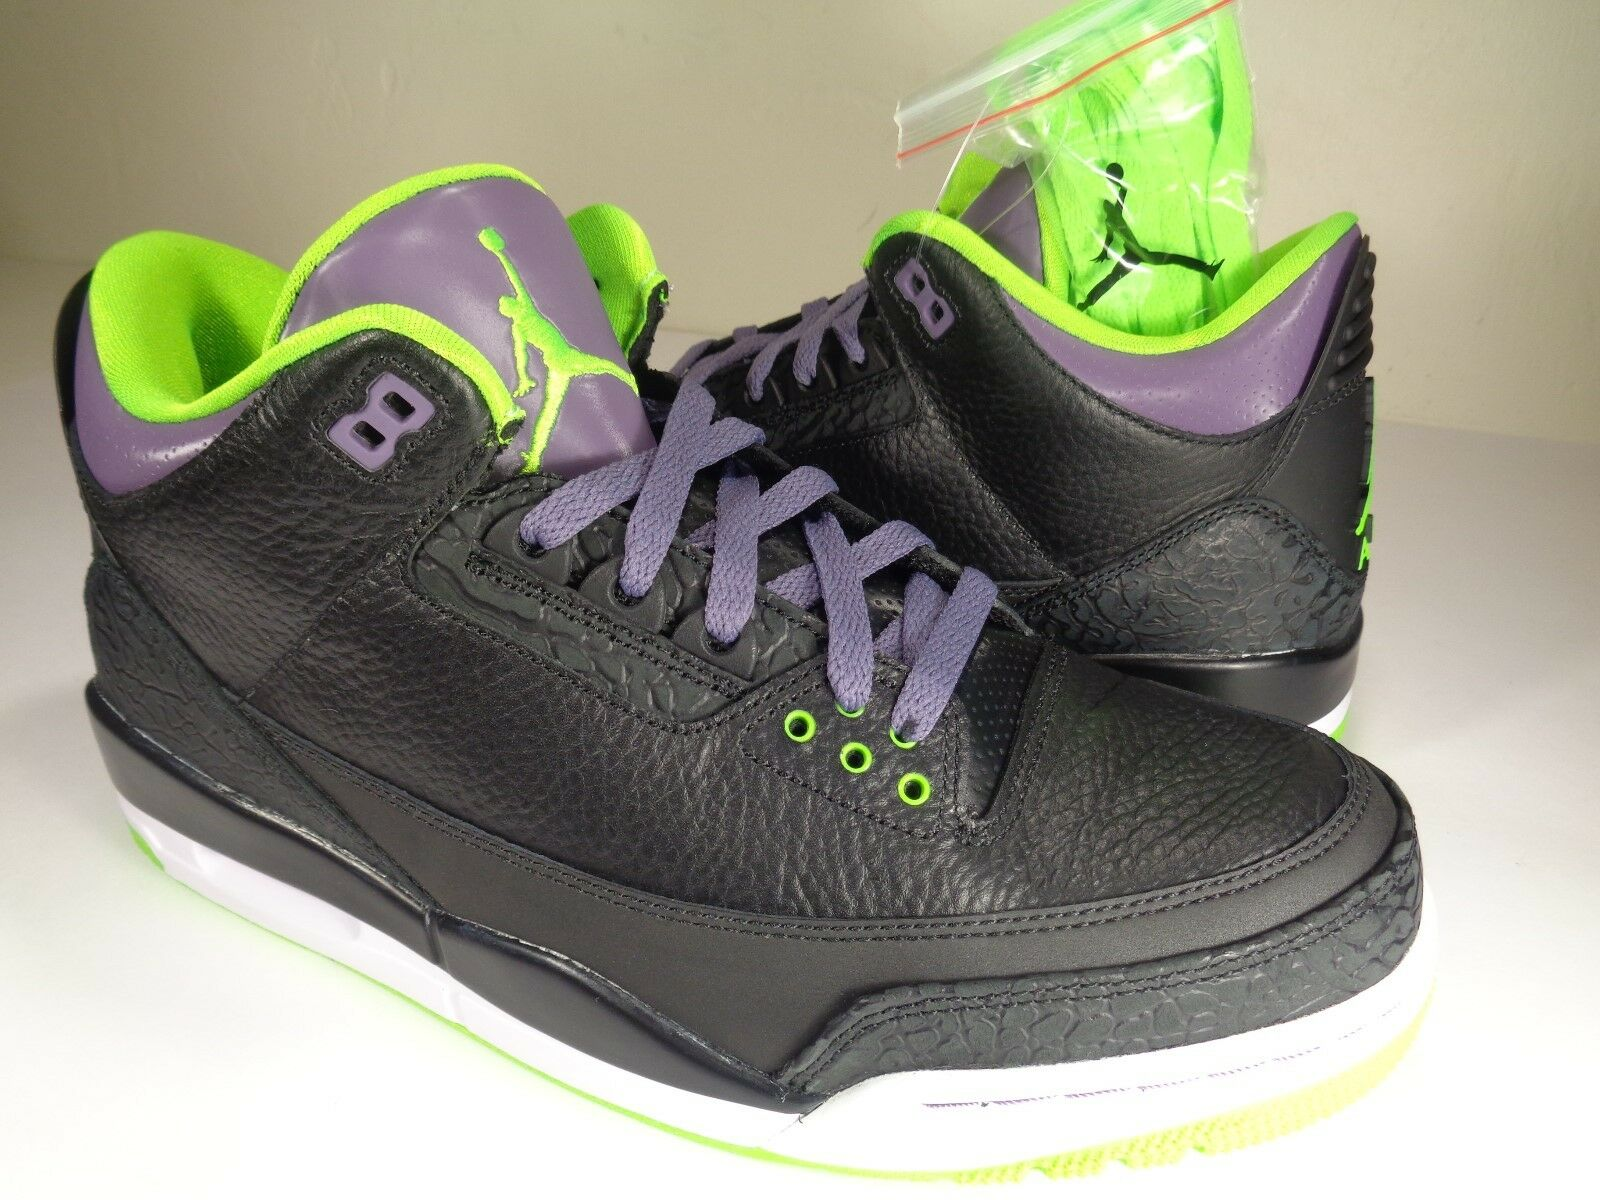 Nike Air Jordan 3 III Retro Joker Black Green Purple White Price reduction New shoes for men and women, limited time discount